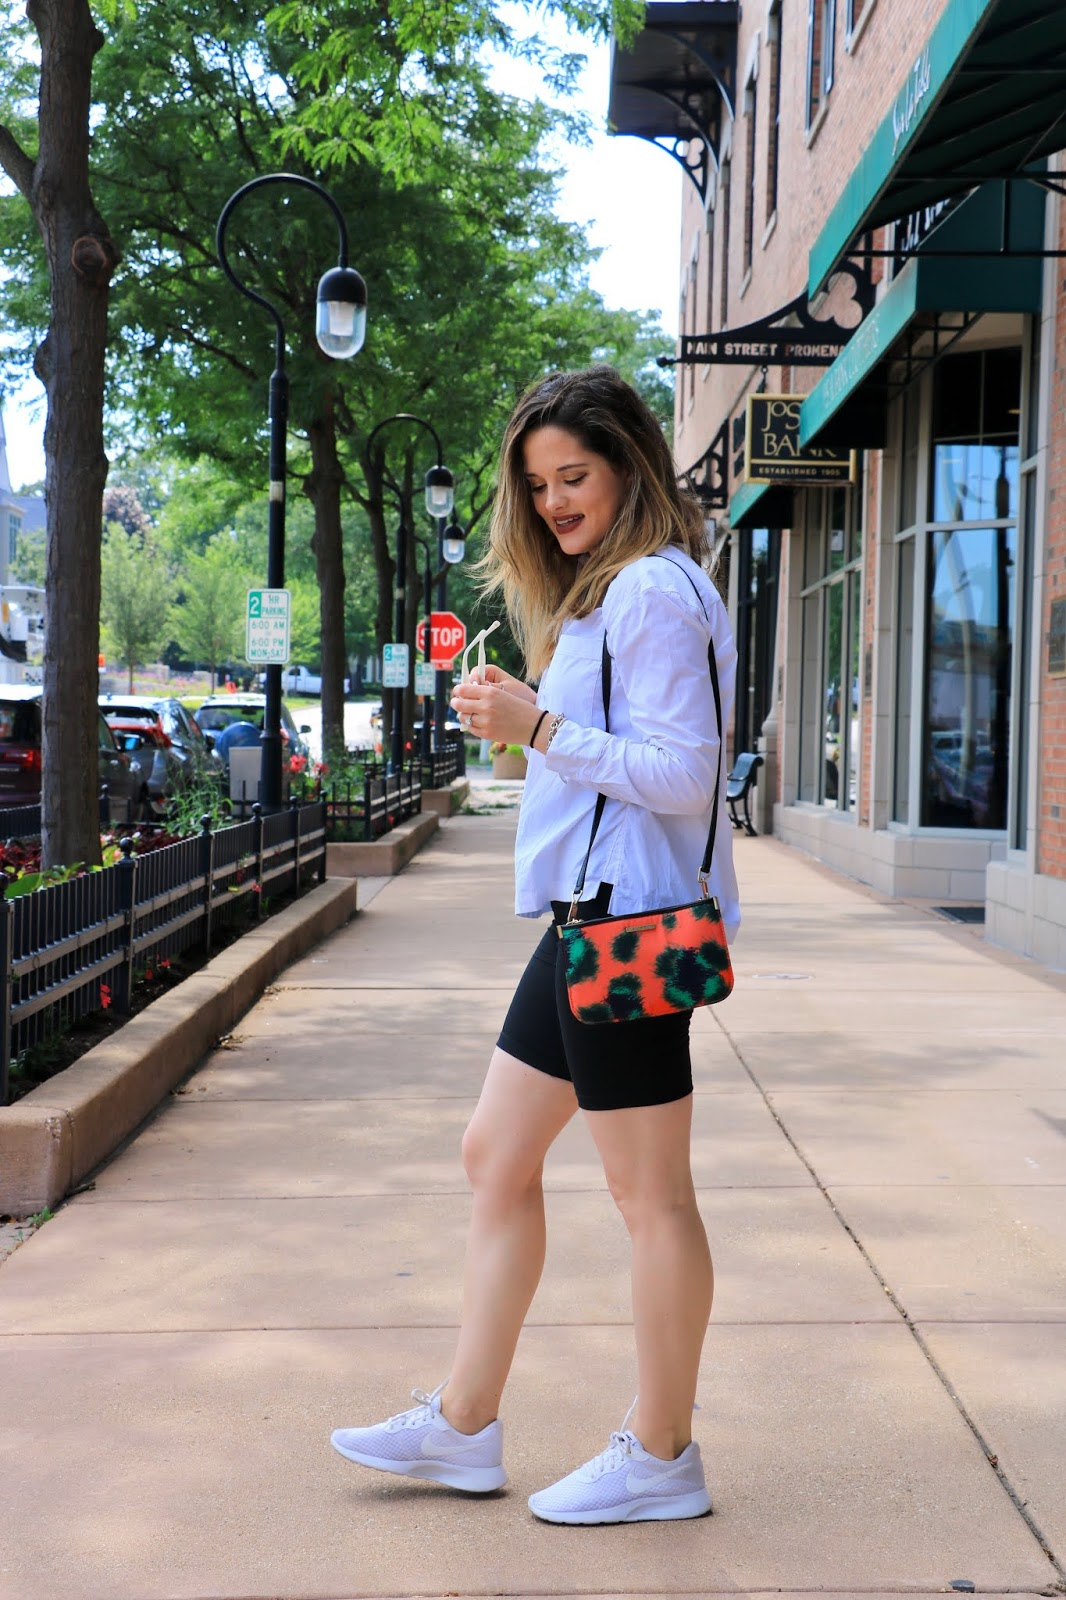 Nyc fashion blogger Kathleen Harper wearing high-waisted bike shorts, a white blouse, and sneakers.